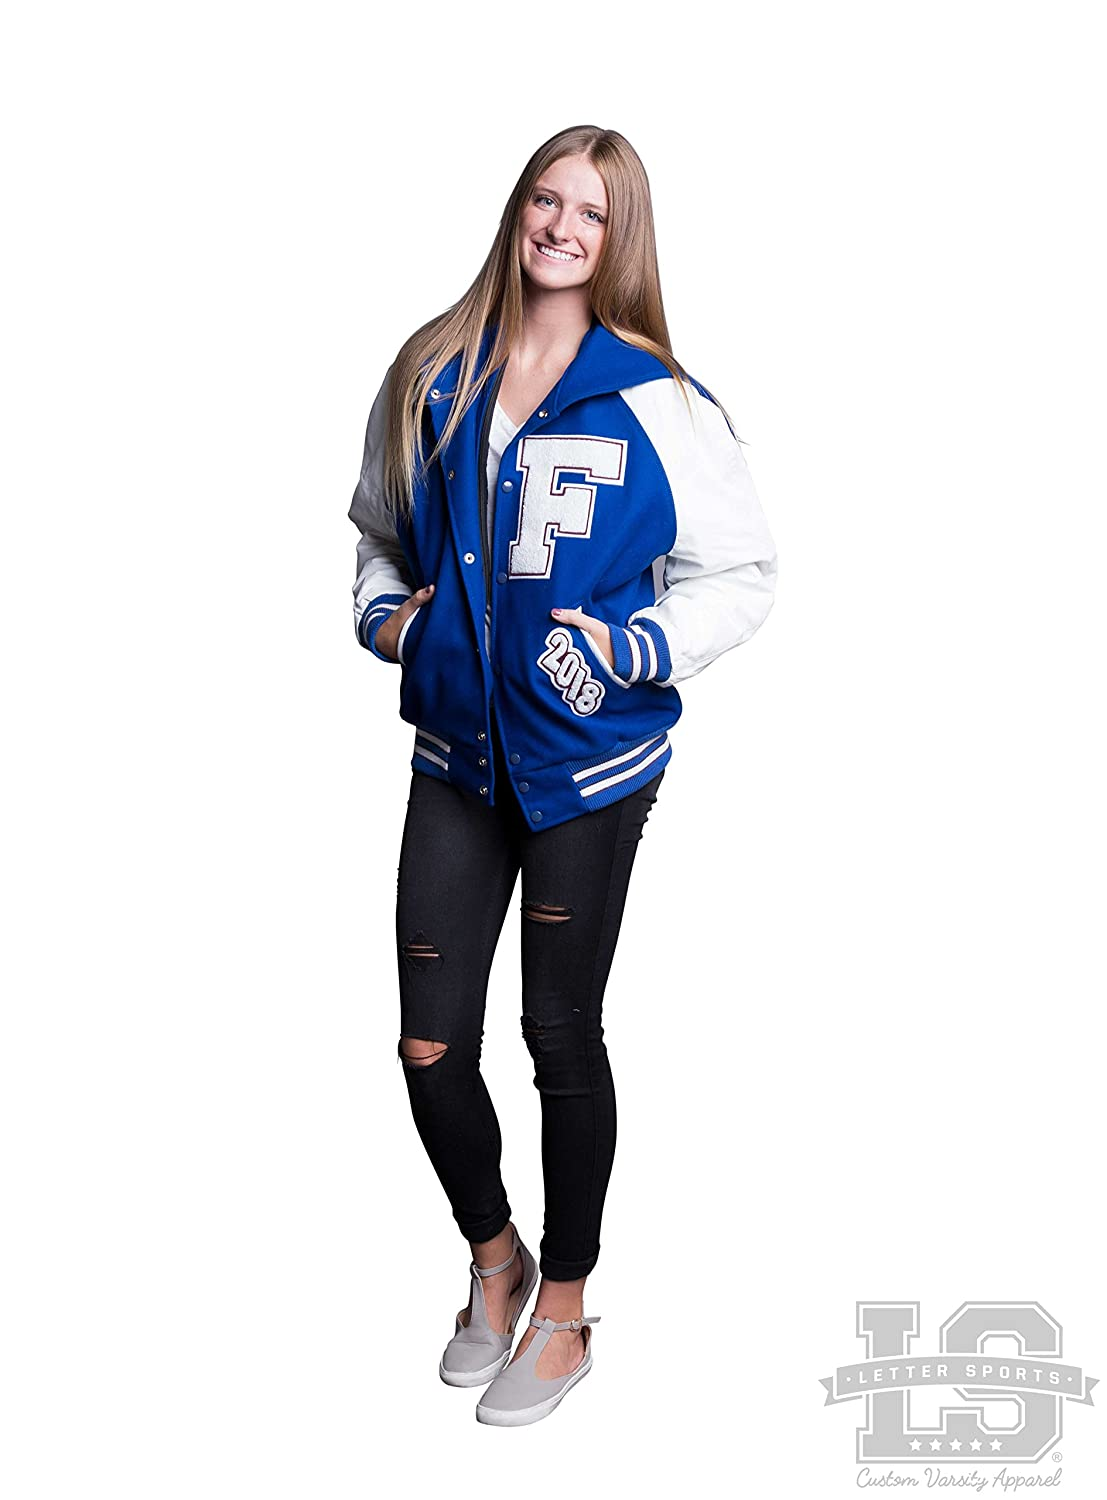 Womens Varsity Letter Jacket White Leather & Royal Blue Wool with Zipper Hood